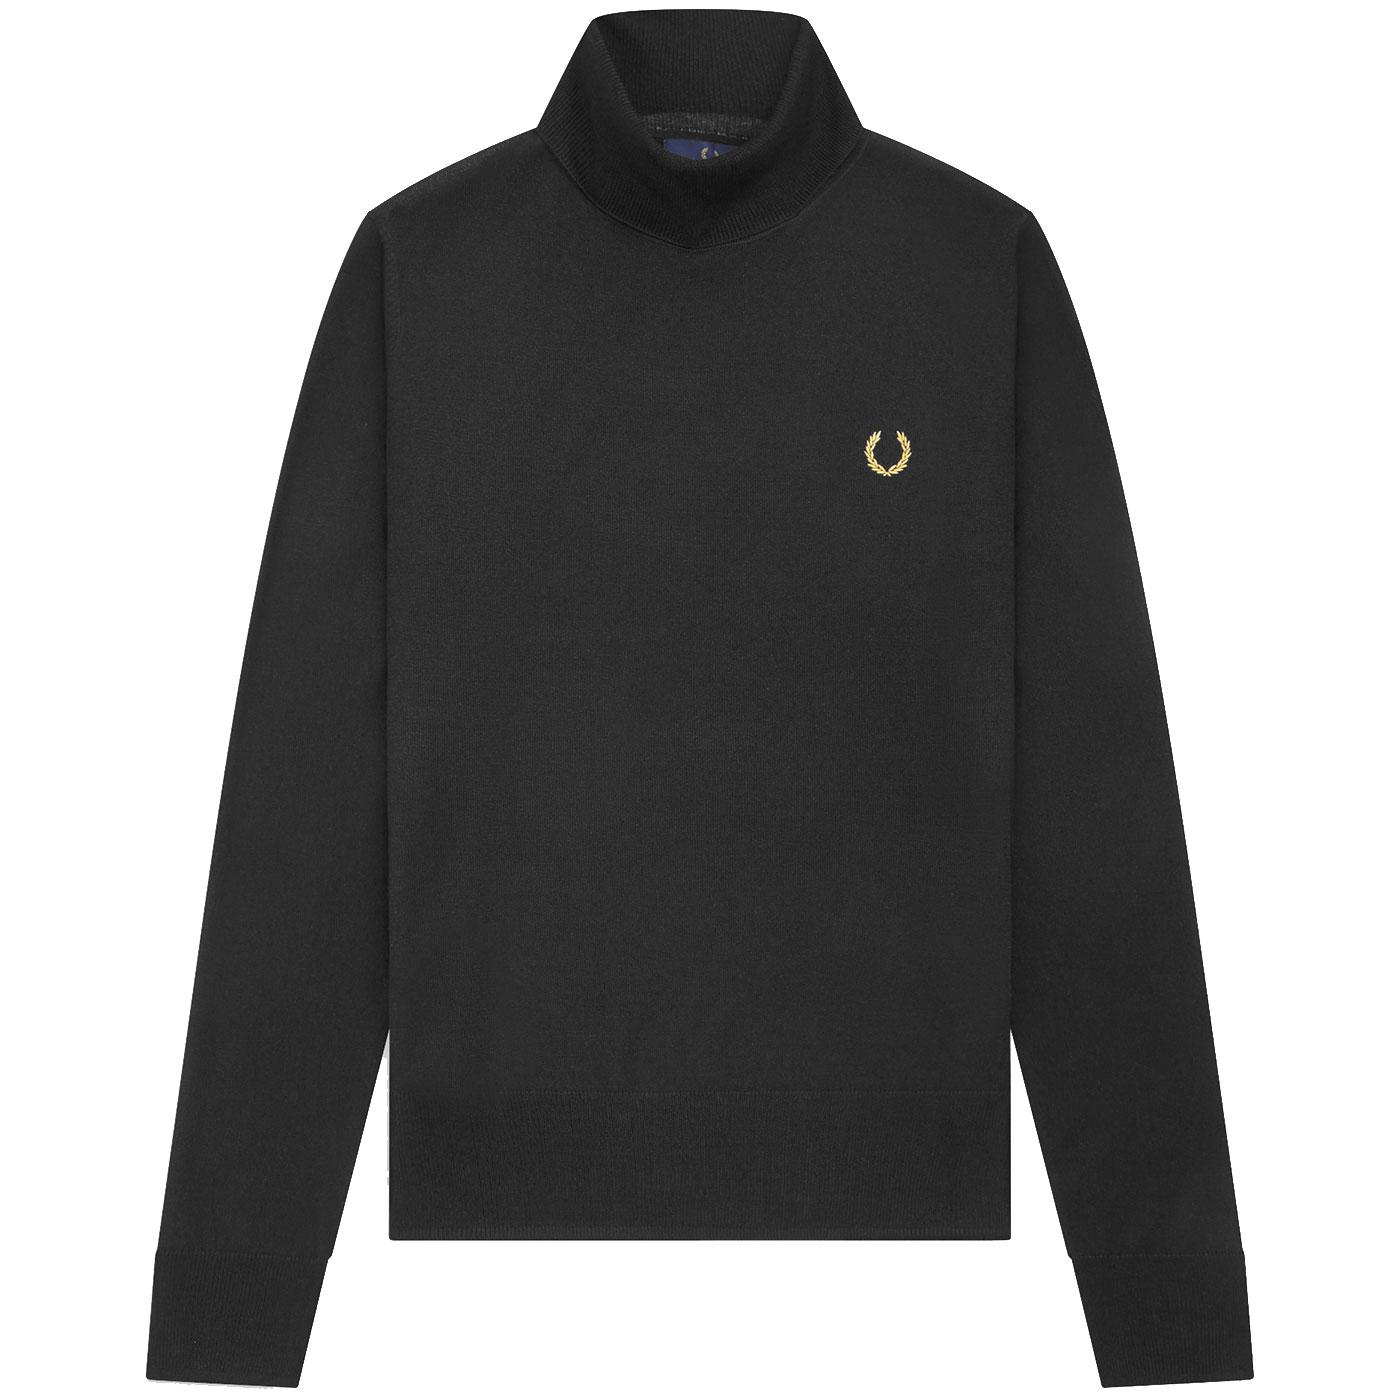 FRED PERRY X MILES KANE Mod Roll Neck Jumper